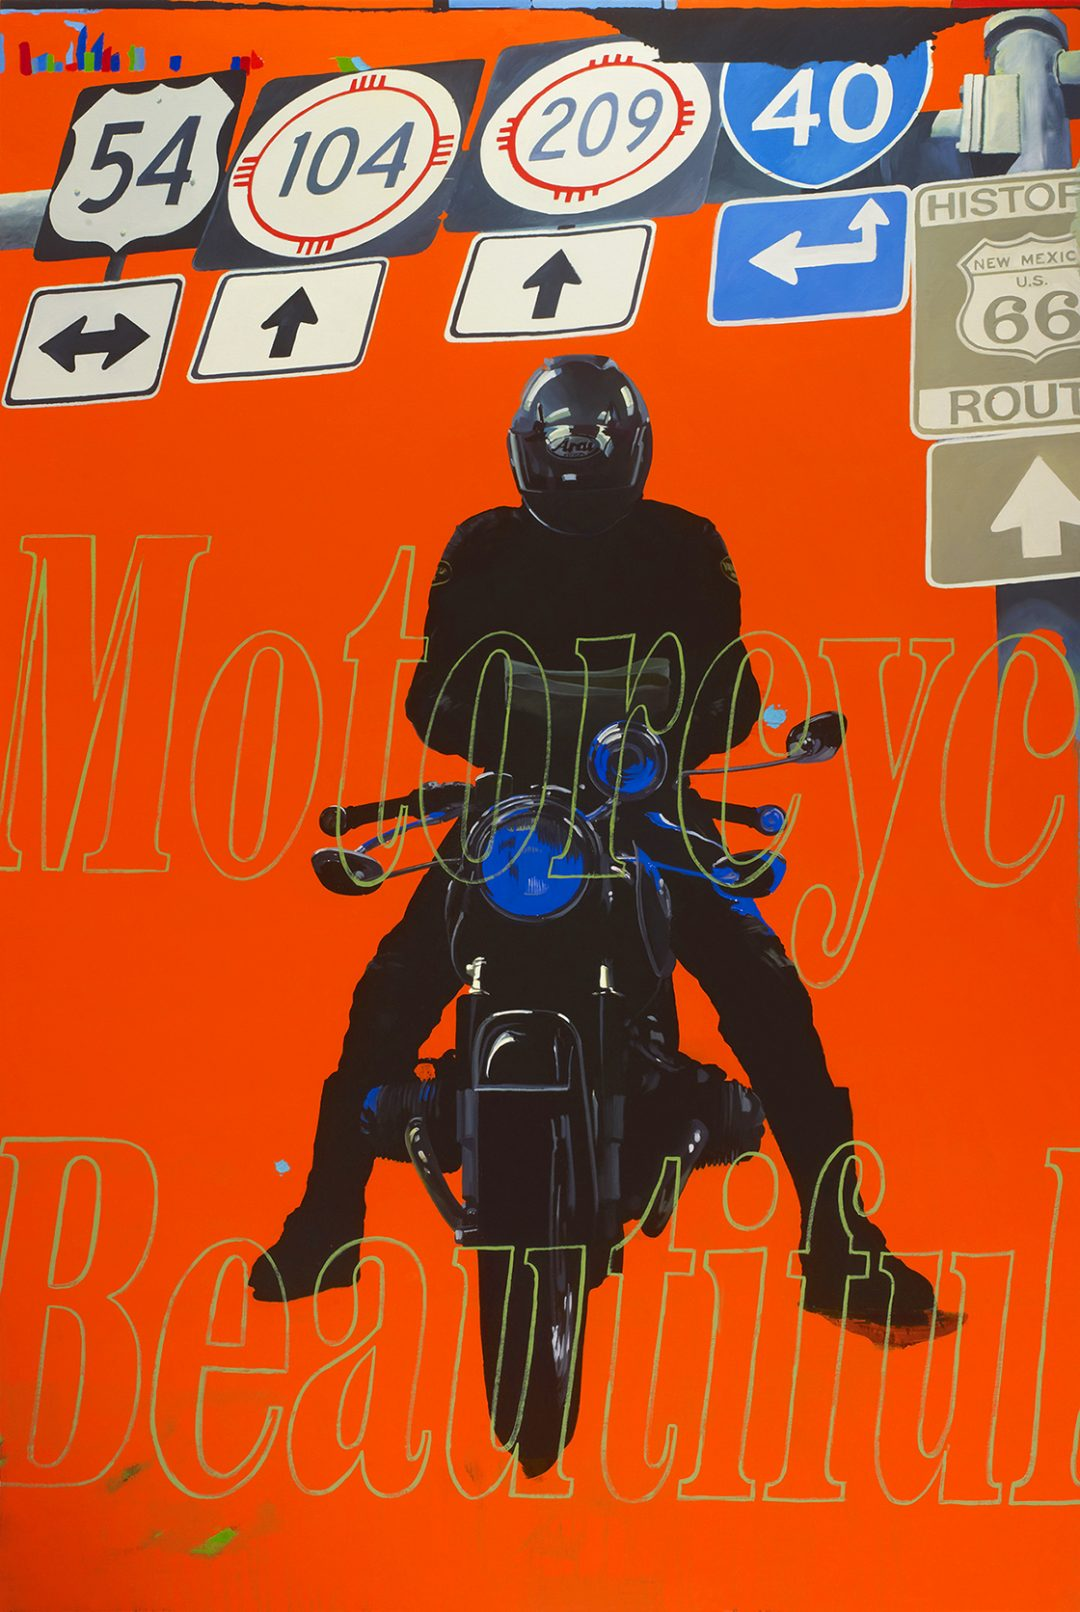 Orange Rider, Motorcycle Beautiful (Navigating Man, From Eight Days) - James Lahey